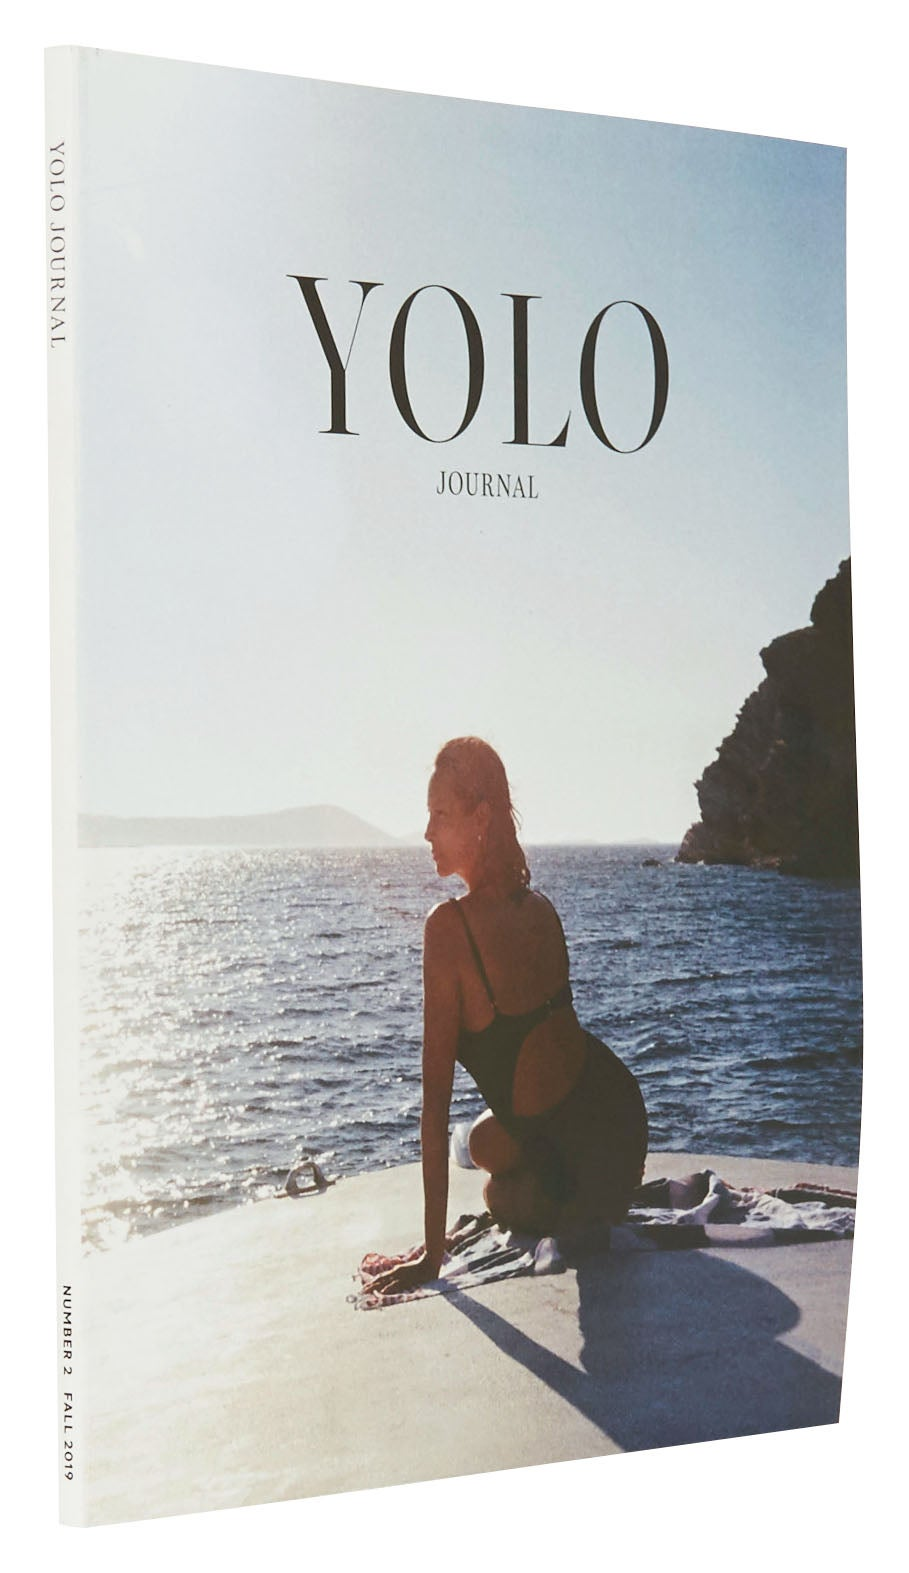 Yolo Journal #2 - Fall 2019